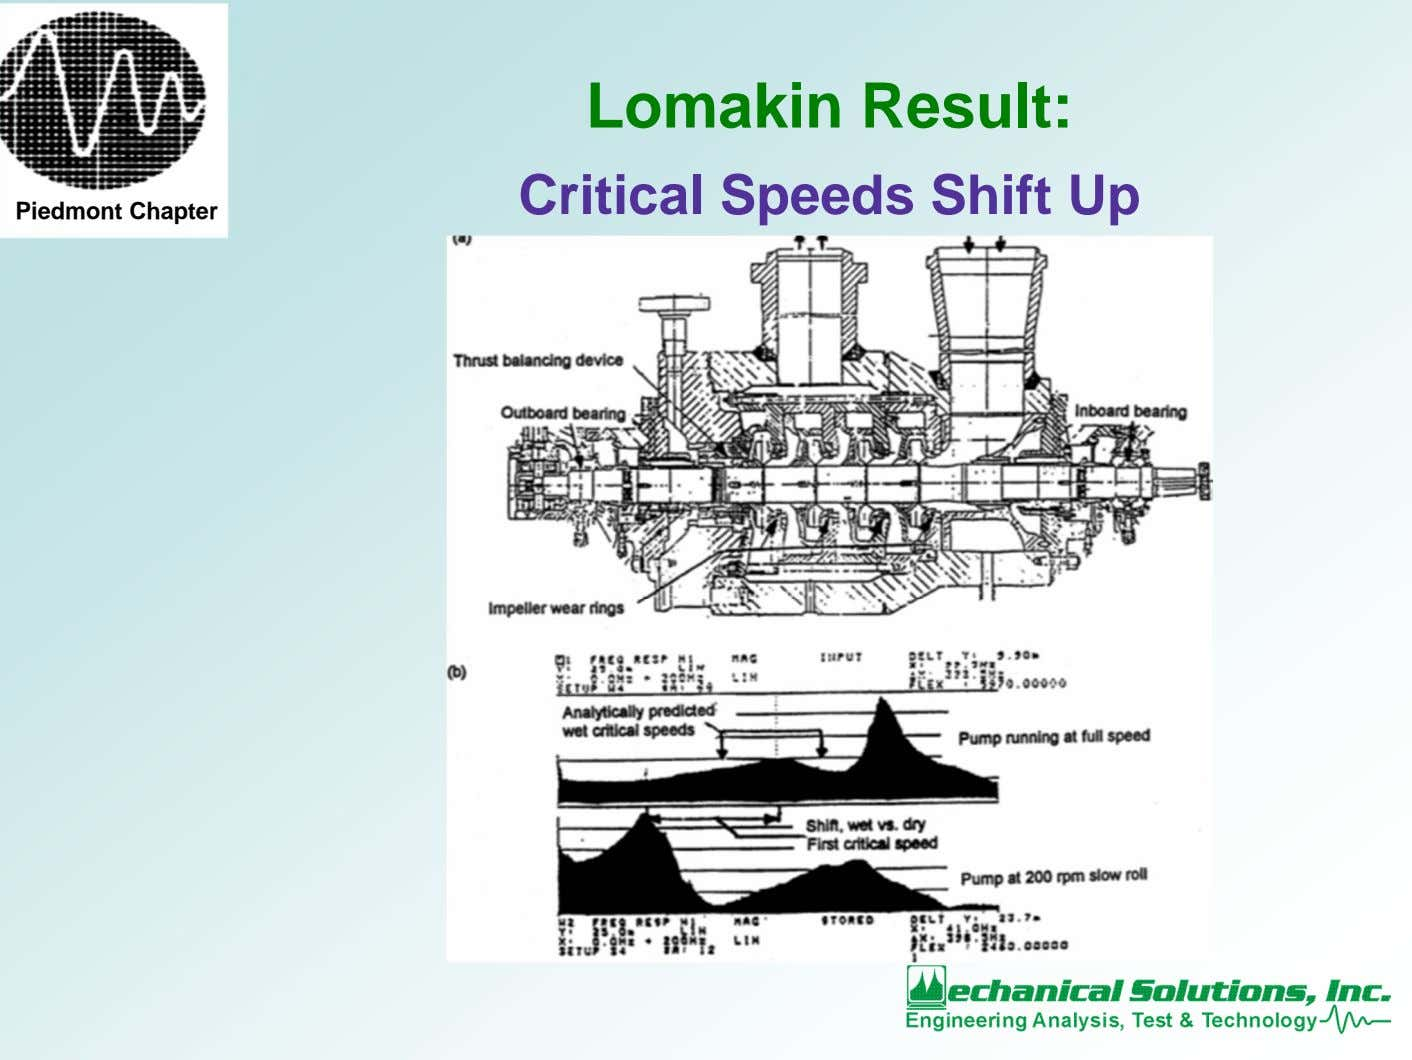 Lomakin Result: Critical Speeds Shift Up Piedmont Chapter